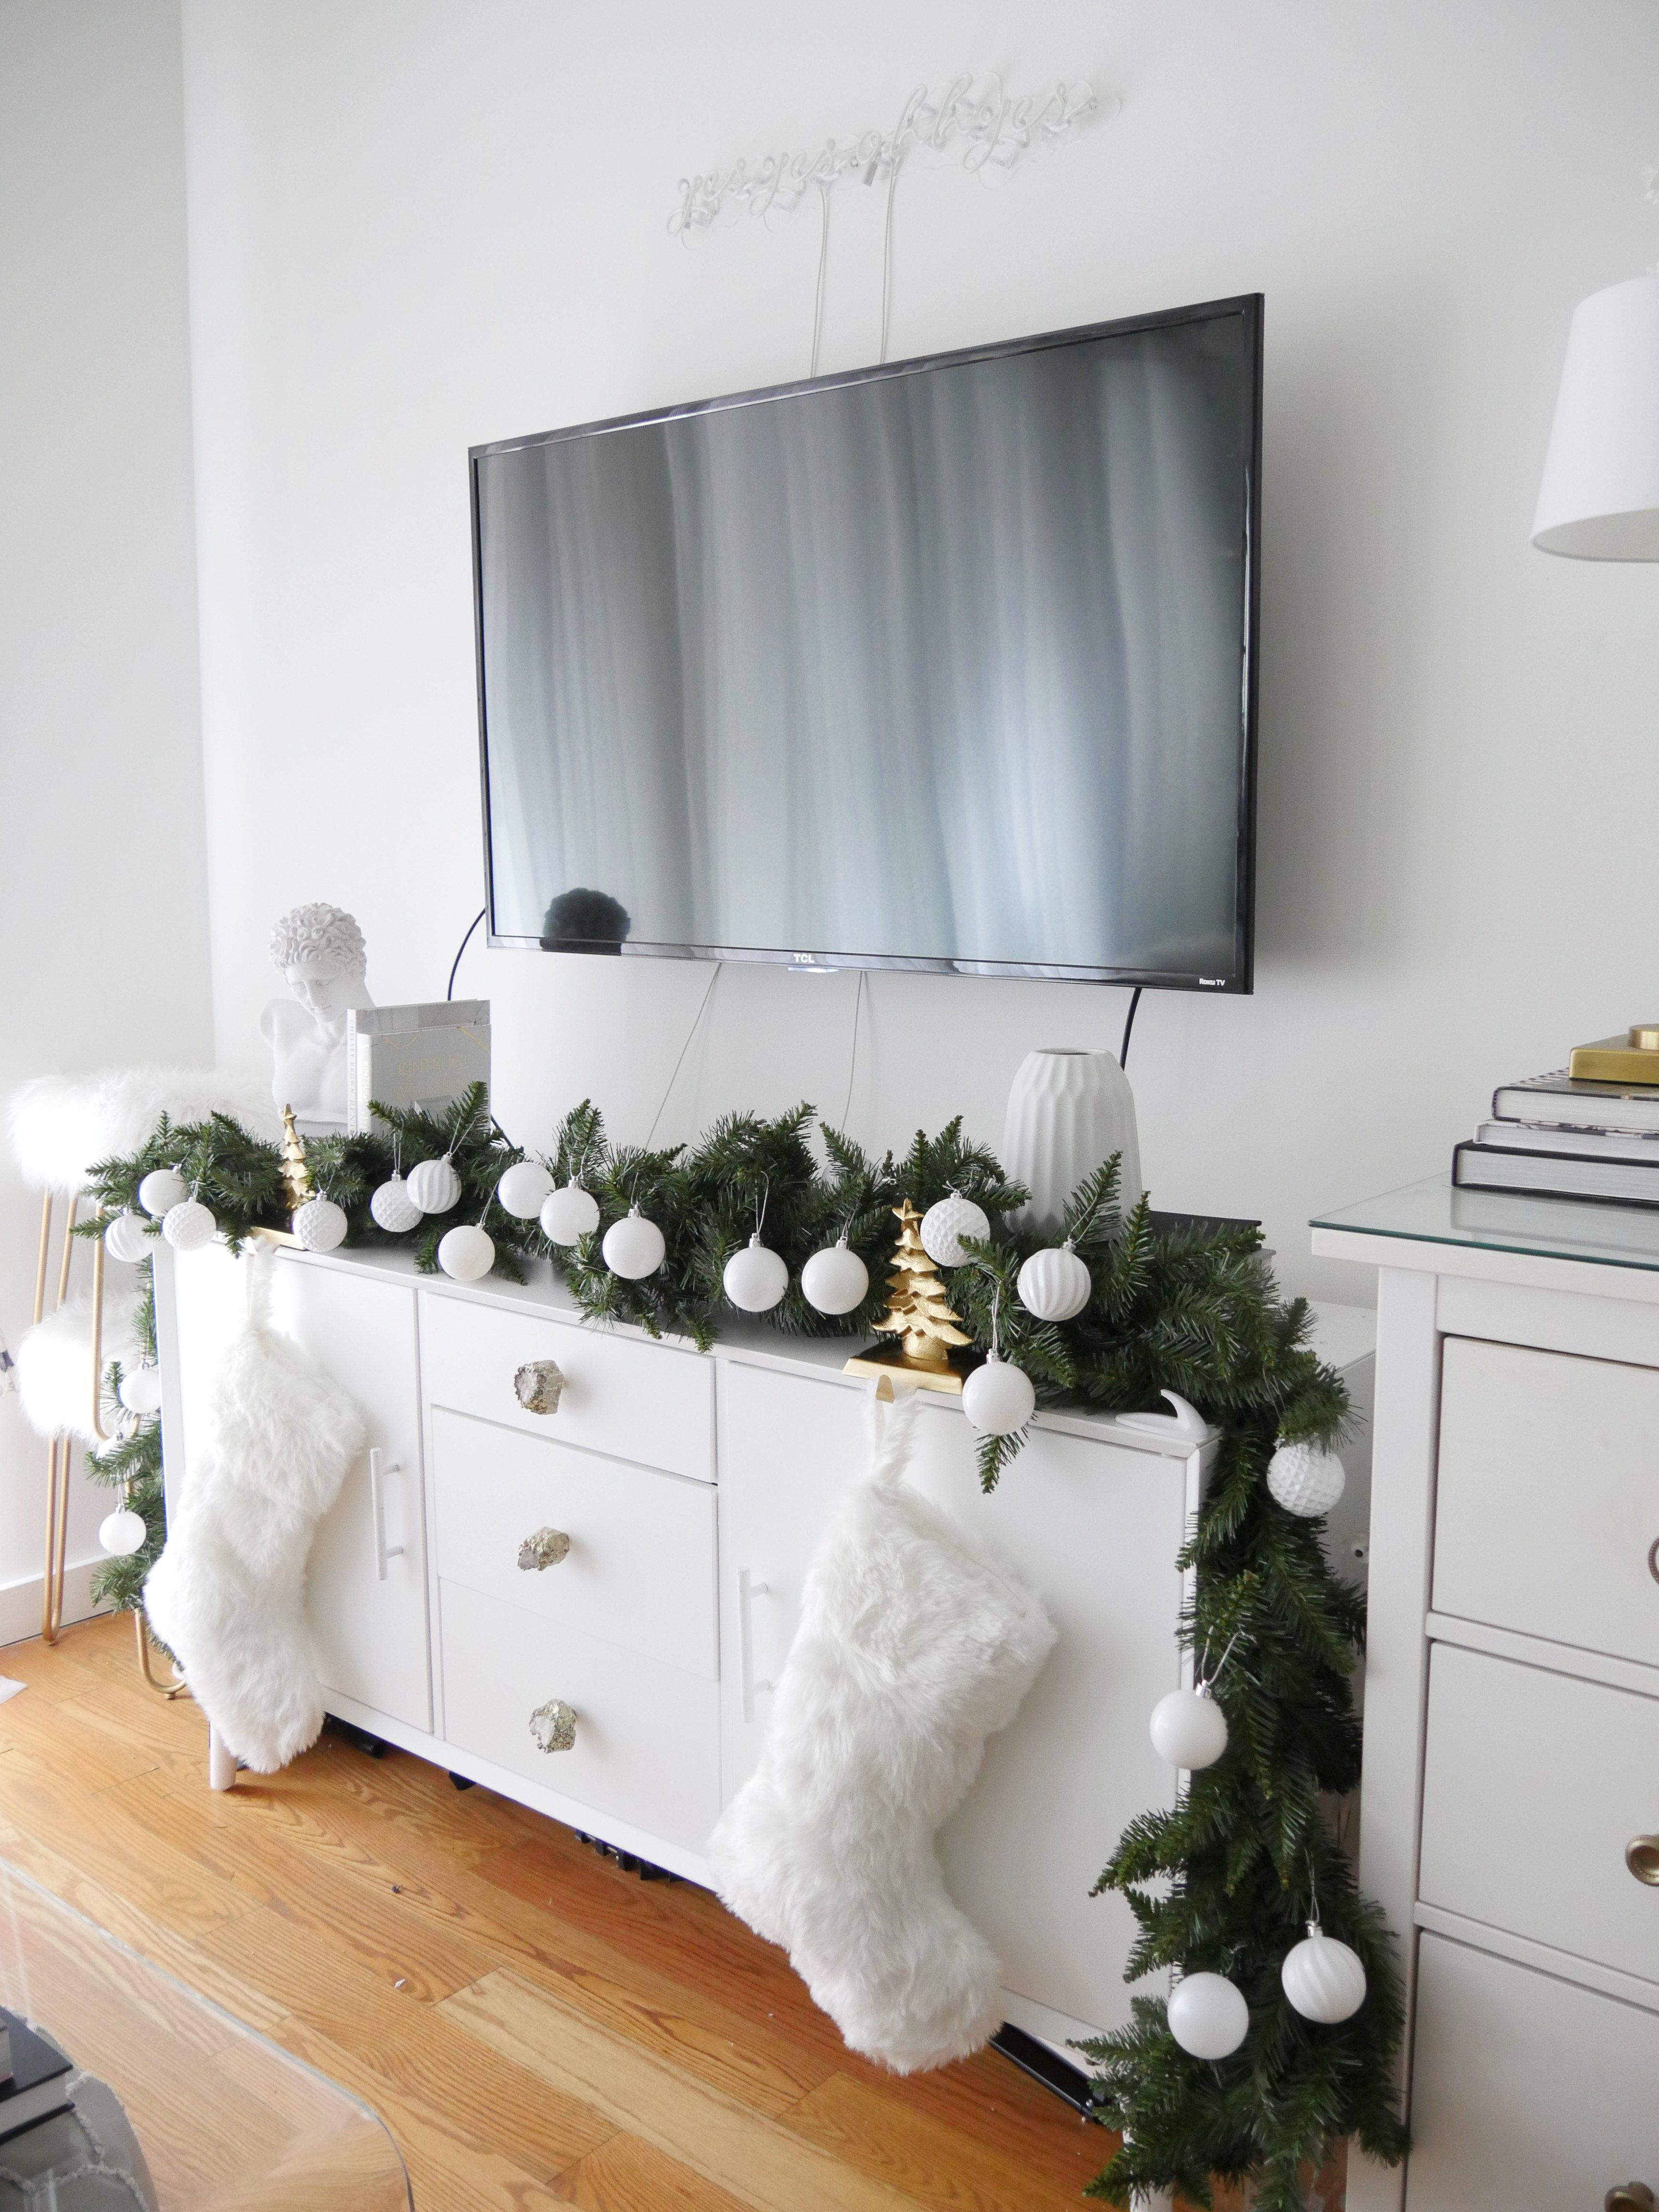 How To Decorate For Christmas Without A Tree City Chic Decor Christmas Room Decor Christmas Decorations Apartment Christmas Apartment Christmas decor for room